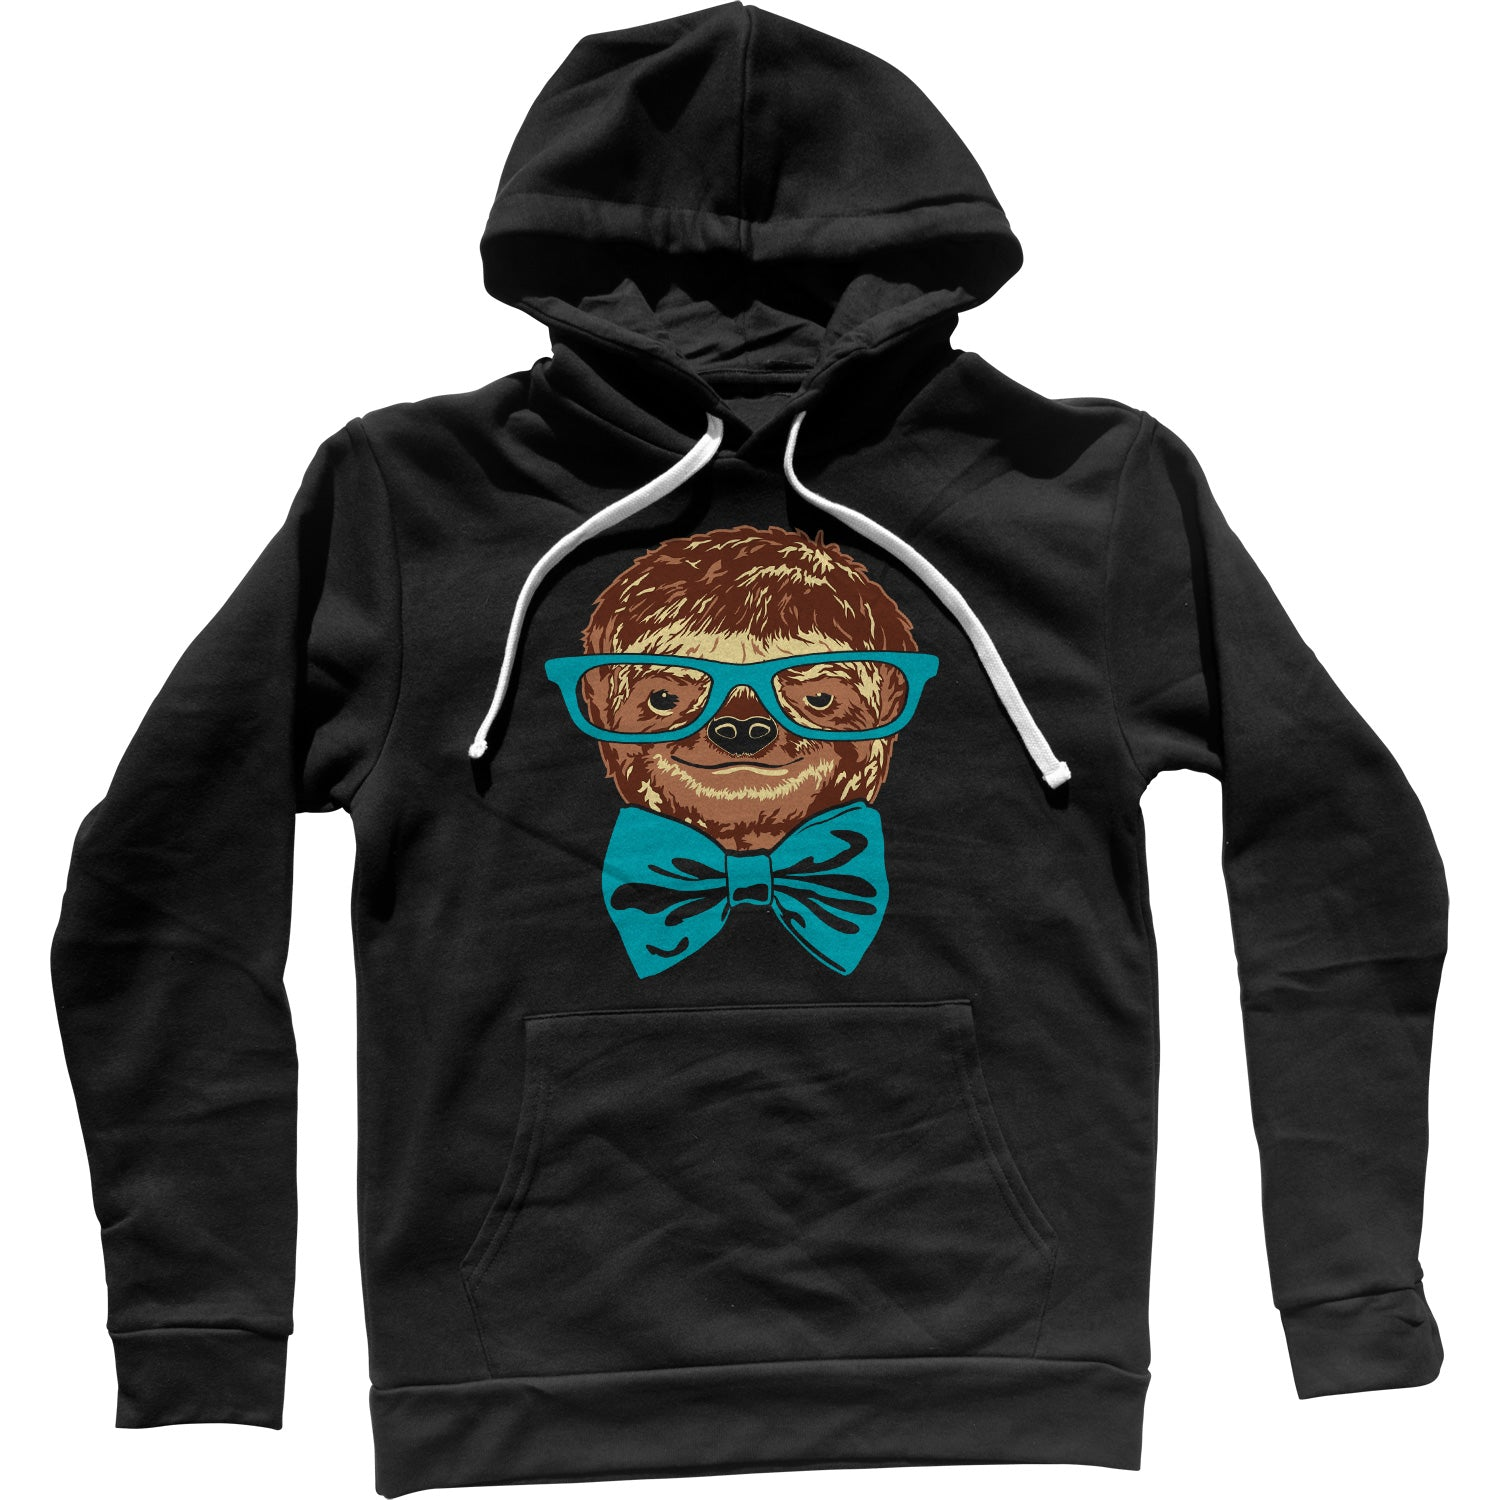 Glasses and Bowtie on a Sloth Unisex Hoodie